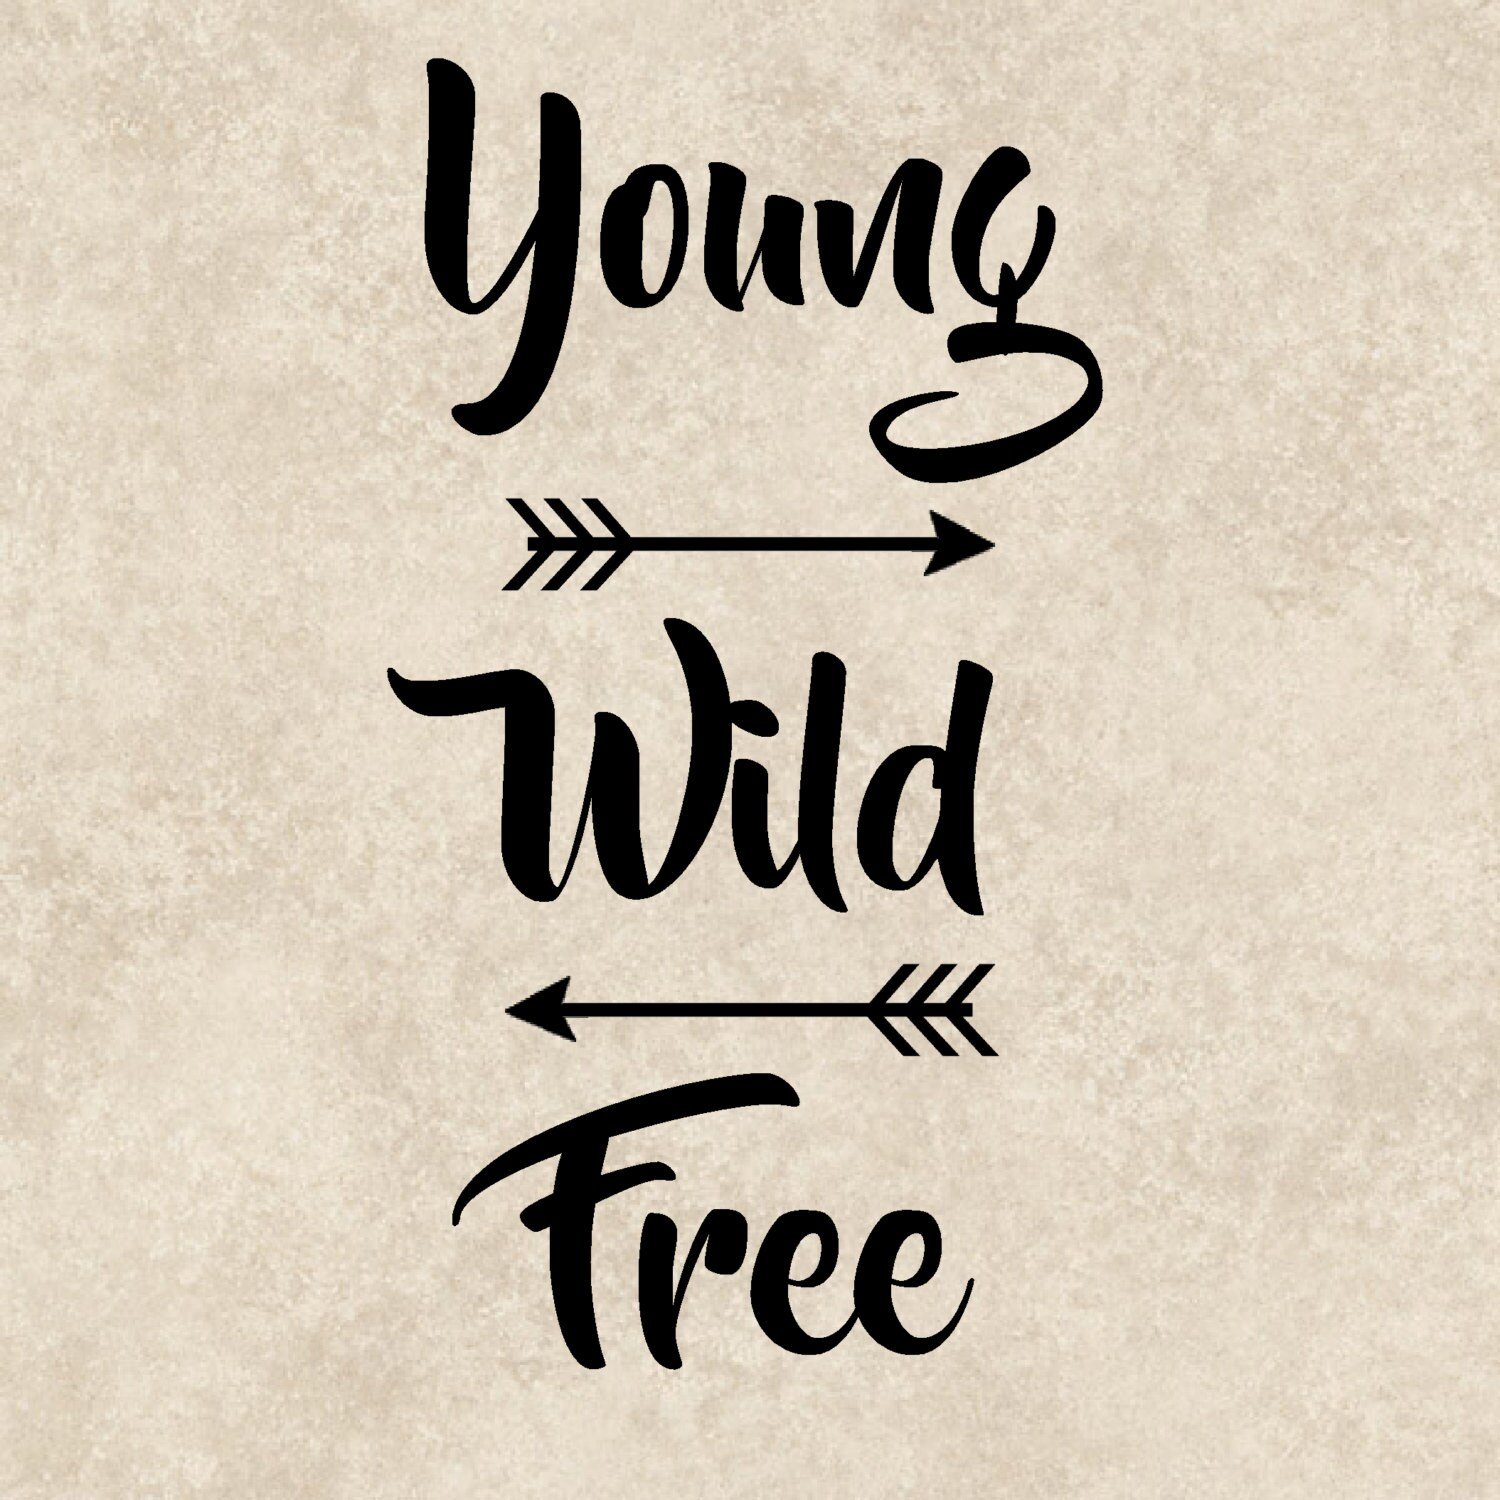 Free Quote Young Wild Free Sticker Young Wild Free Car Sticker Young Wild